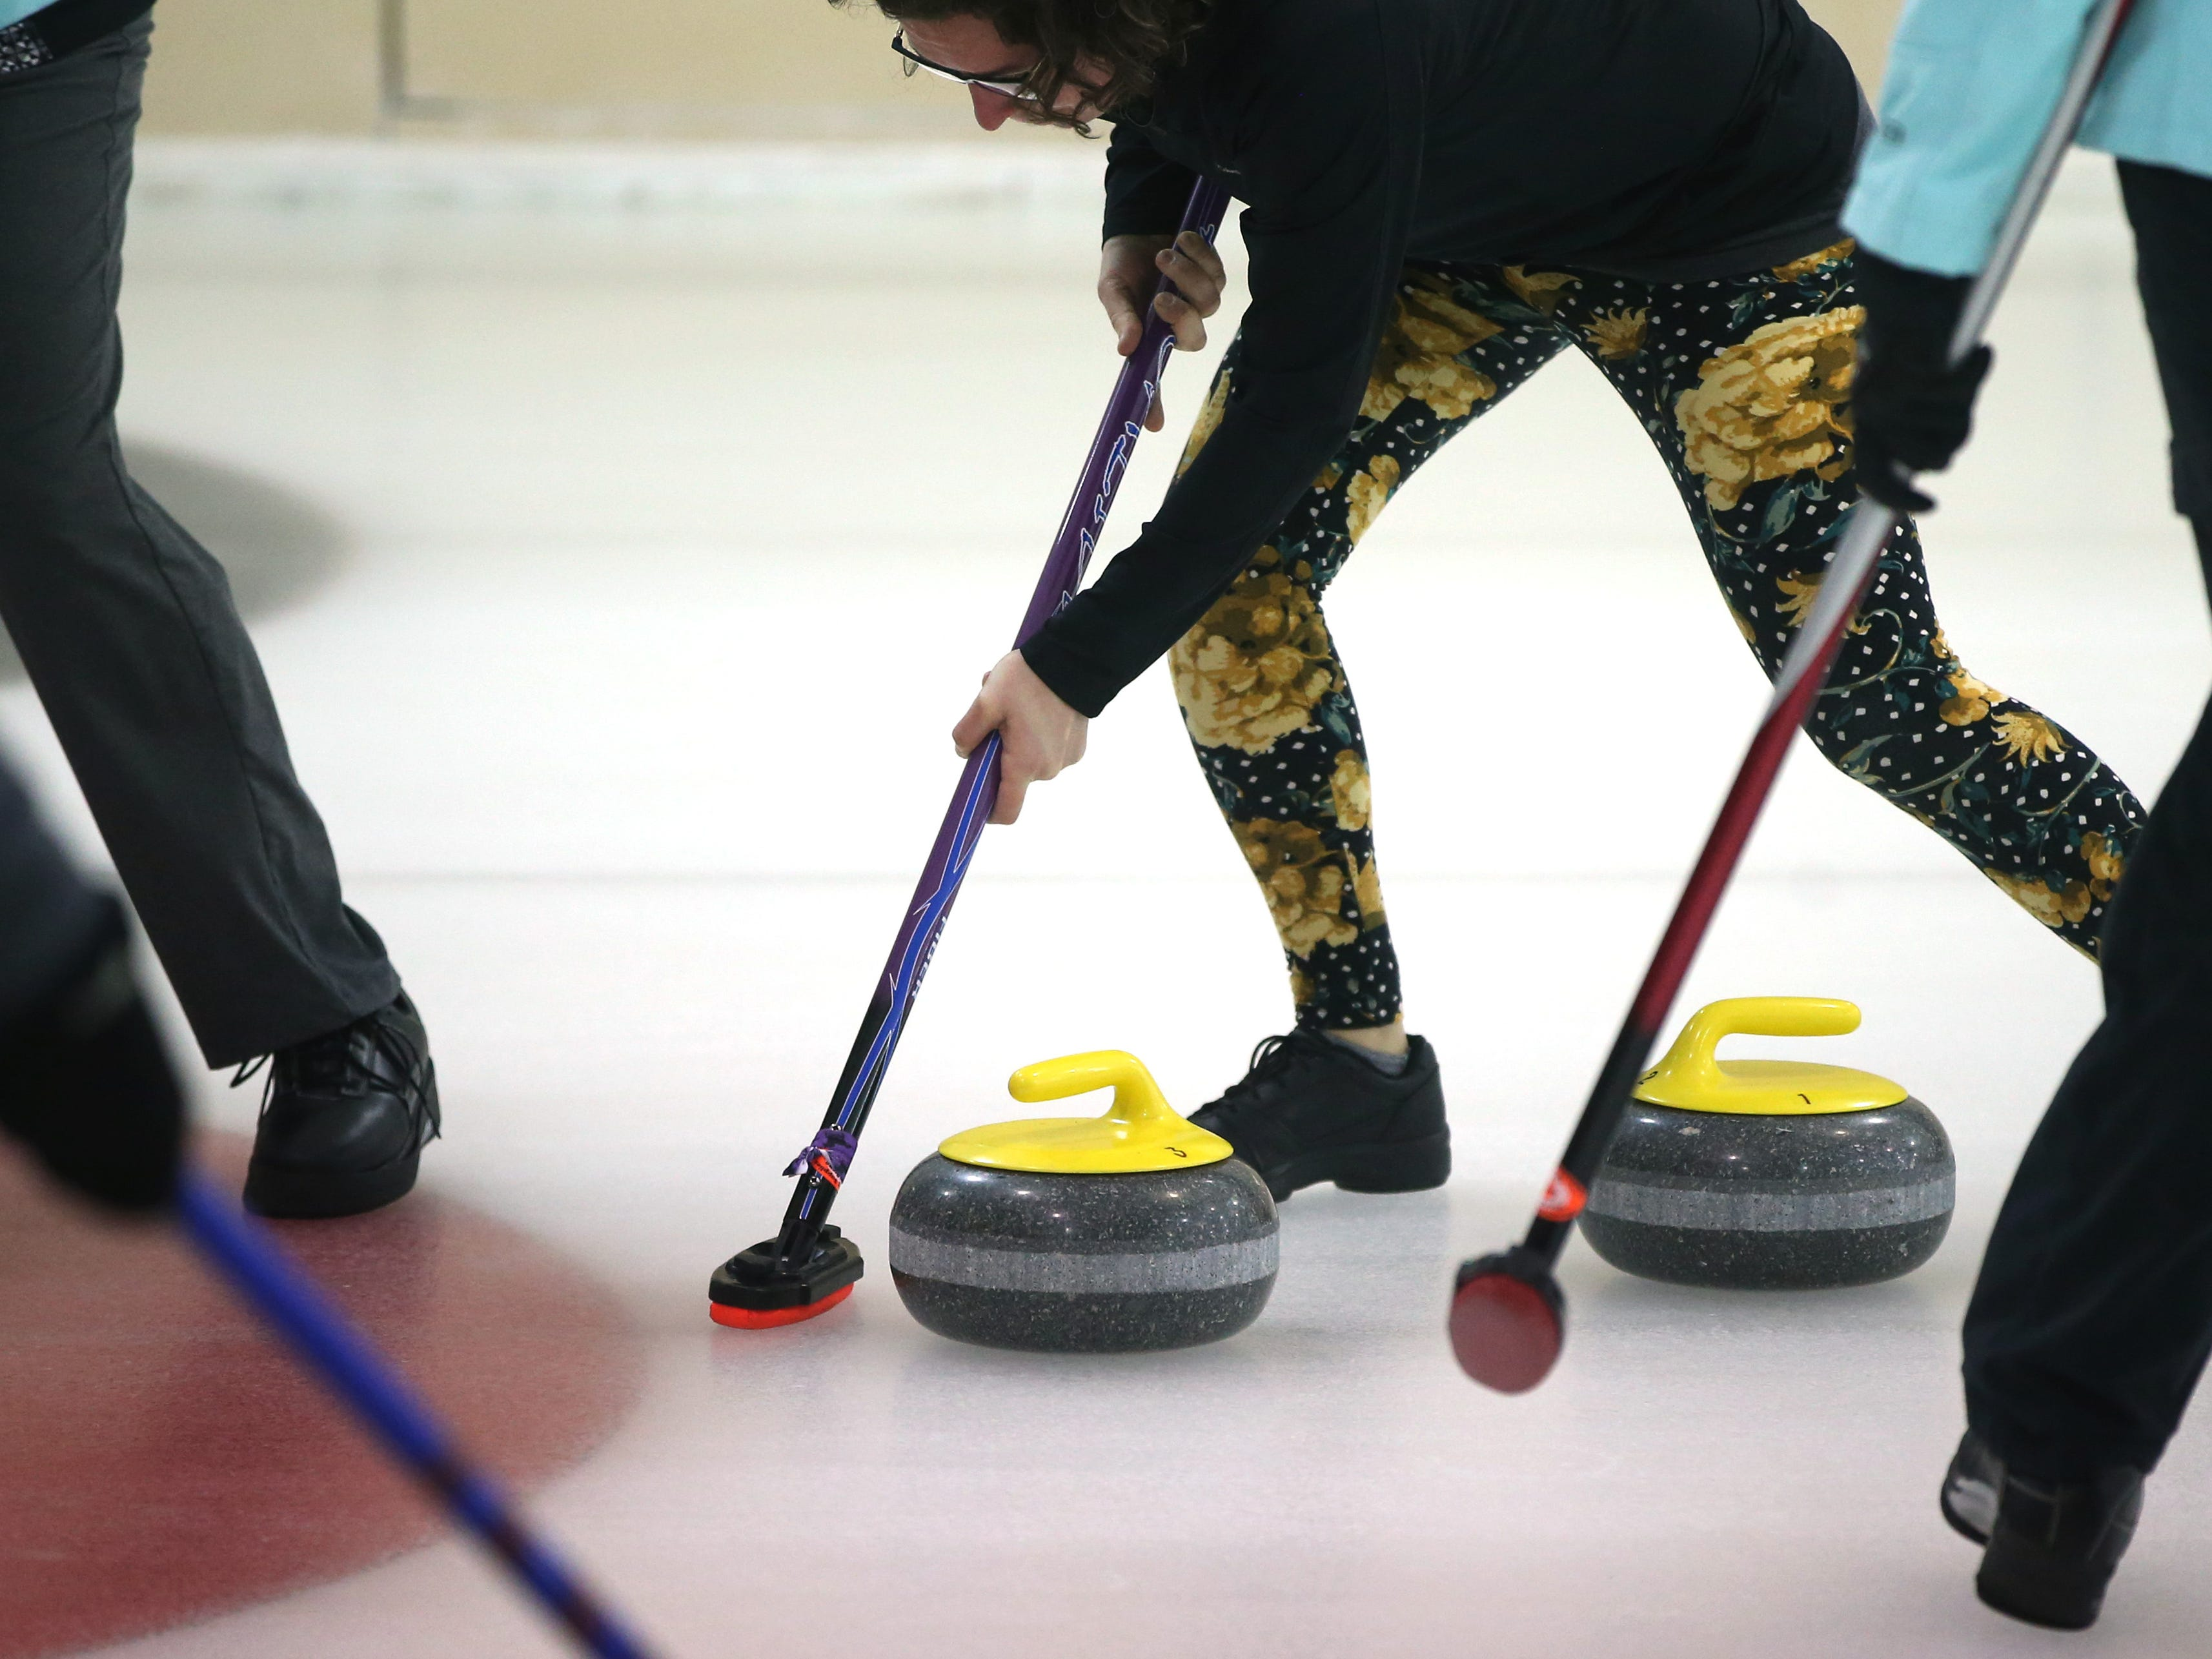 Players sweep the ice to control the speed and direction of a stone during the Wauwatosa Curling Club's 60th annual Badger Women's Bonspiel at the Mueller Building in Hart Park on Jan. 25.